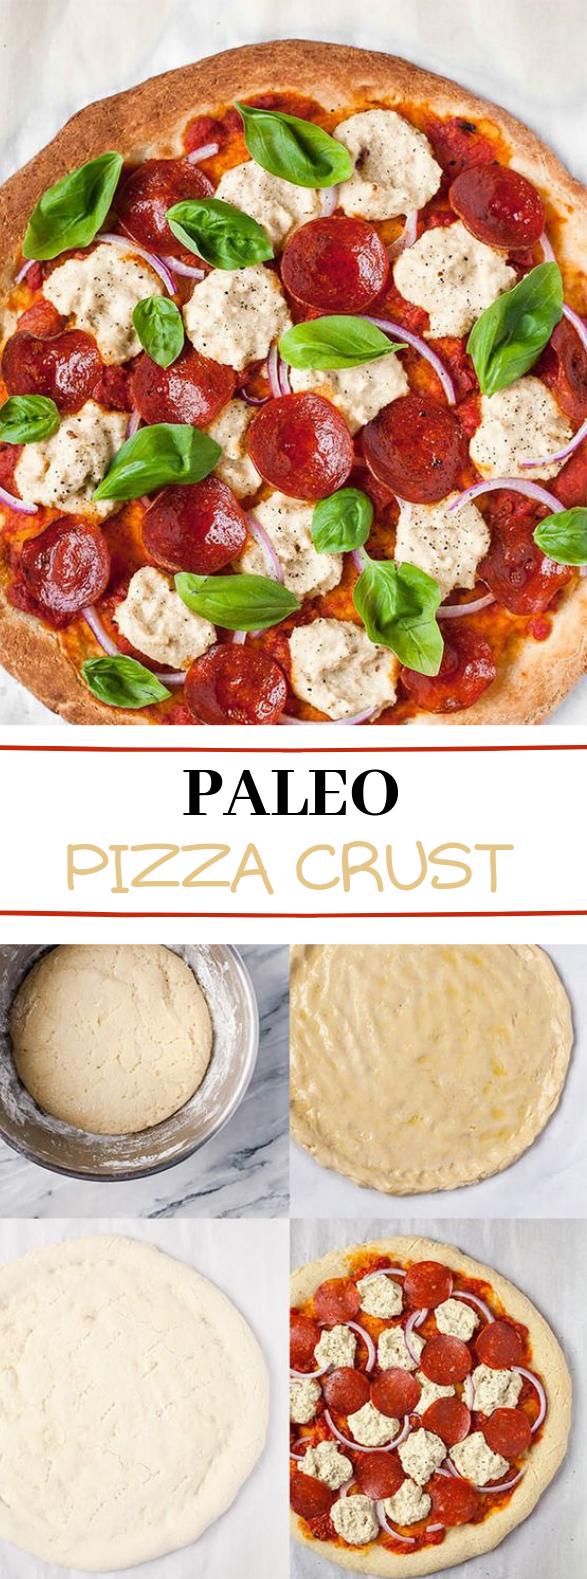 Authentic Paleo Pizza Crust #pizza #paleo